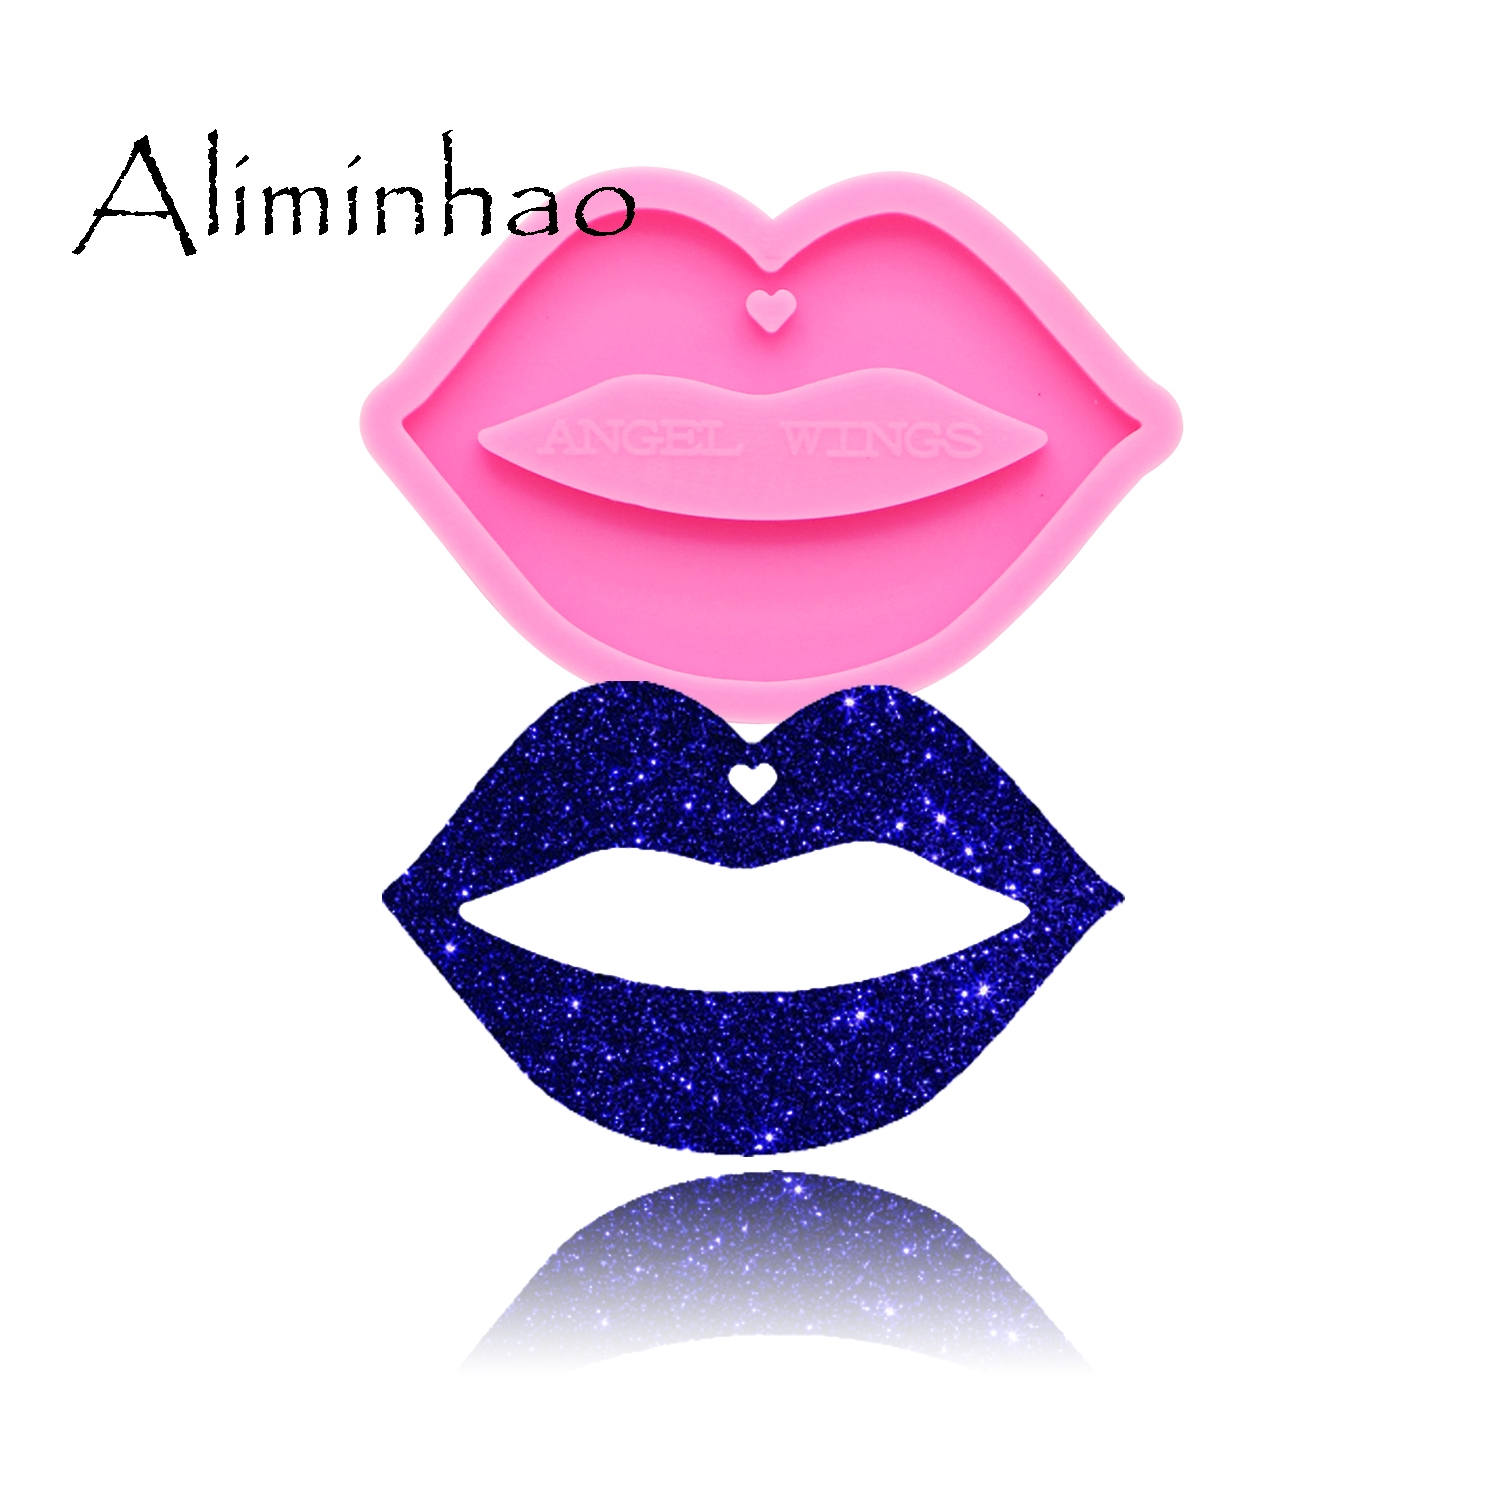 DY0170 Shiny Lips Silicone Molds DIY epoxy resin mould silicon mouth keychain craft custom mold